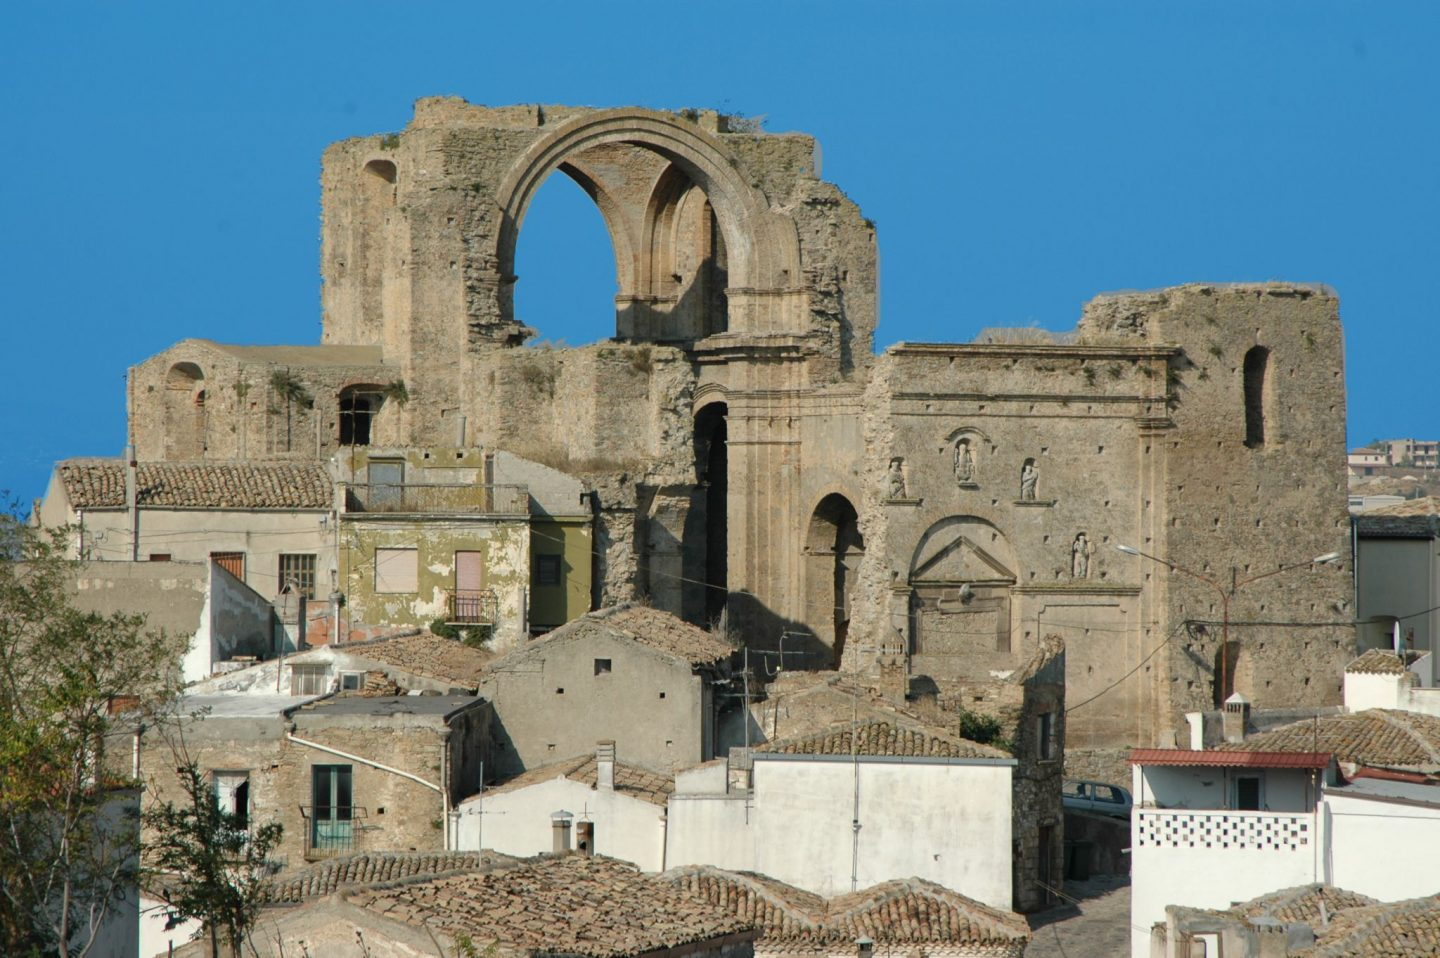 Ancient ruins in the southern Italian town of Grottole in Basilicata. Win a 3 month sabbatical in Grottole - live in Italy for free for 3 months!